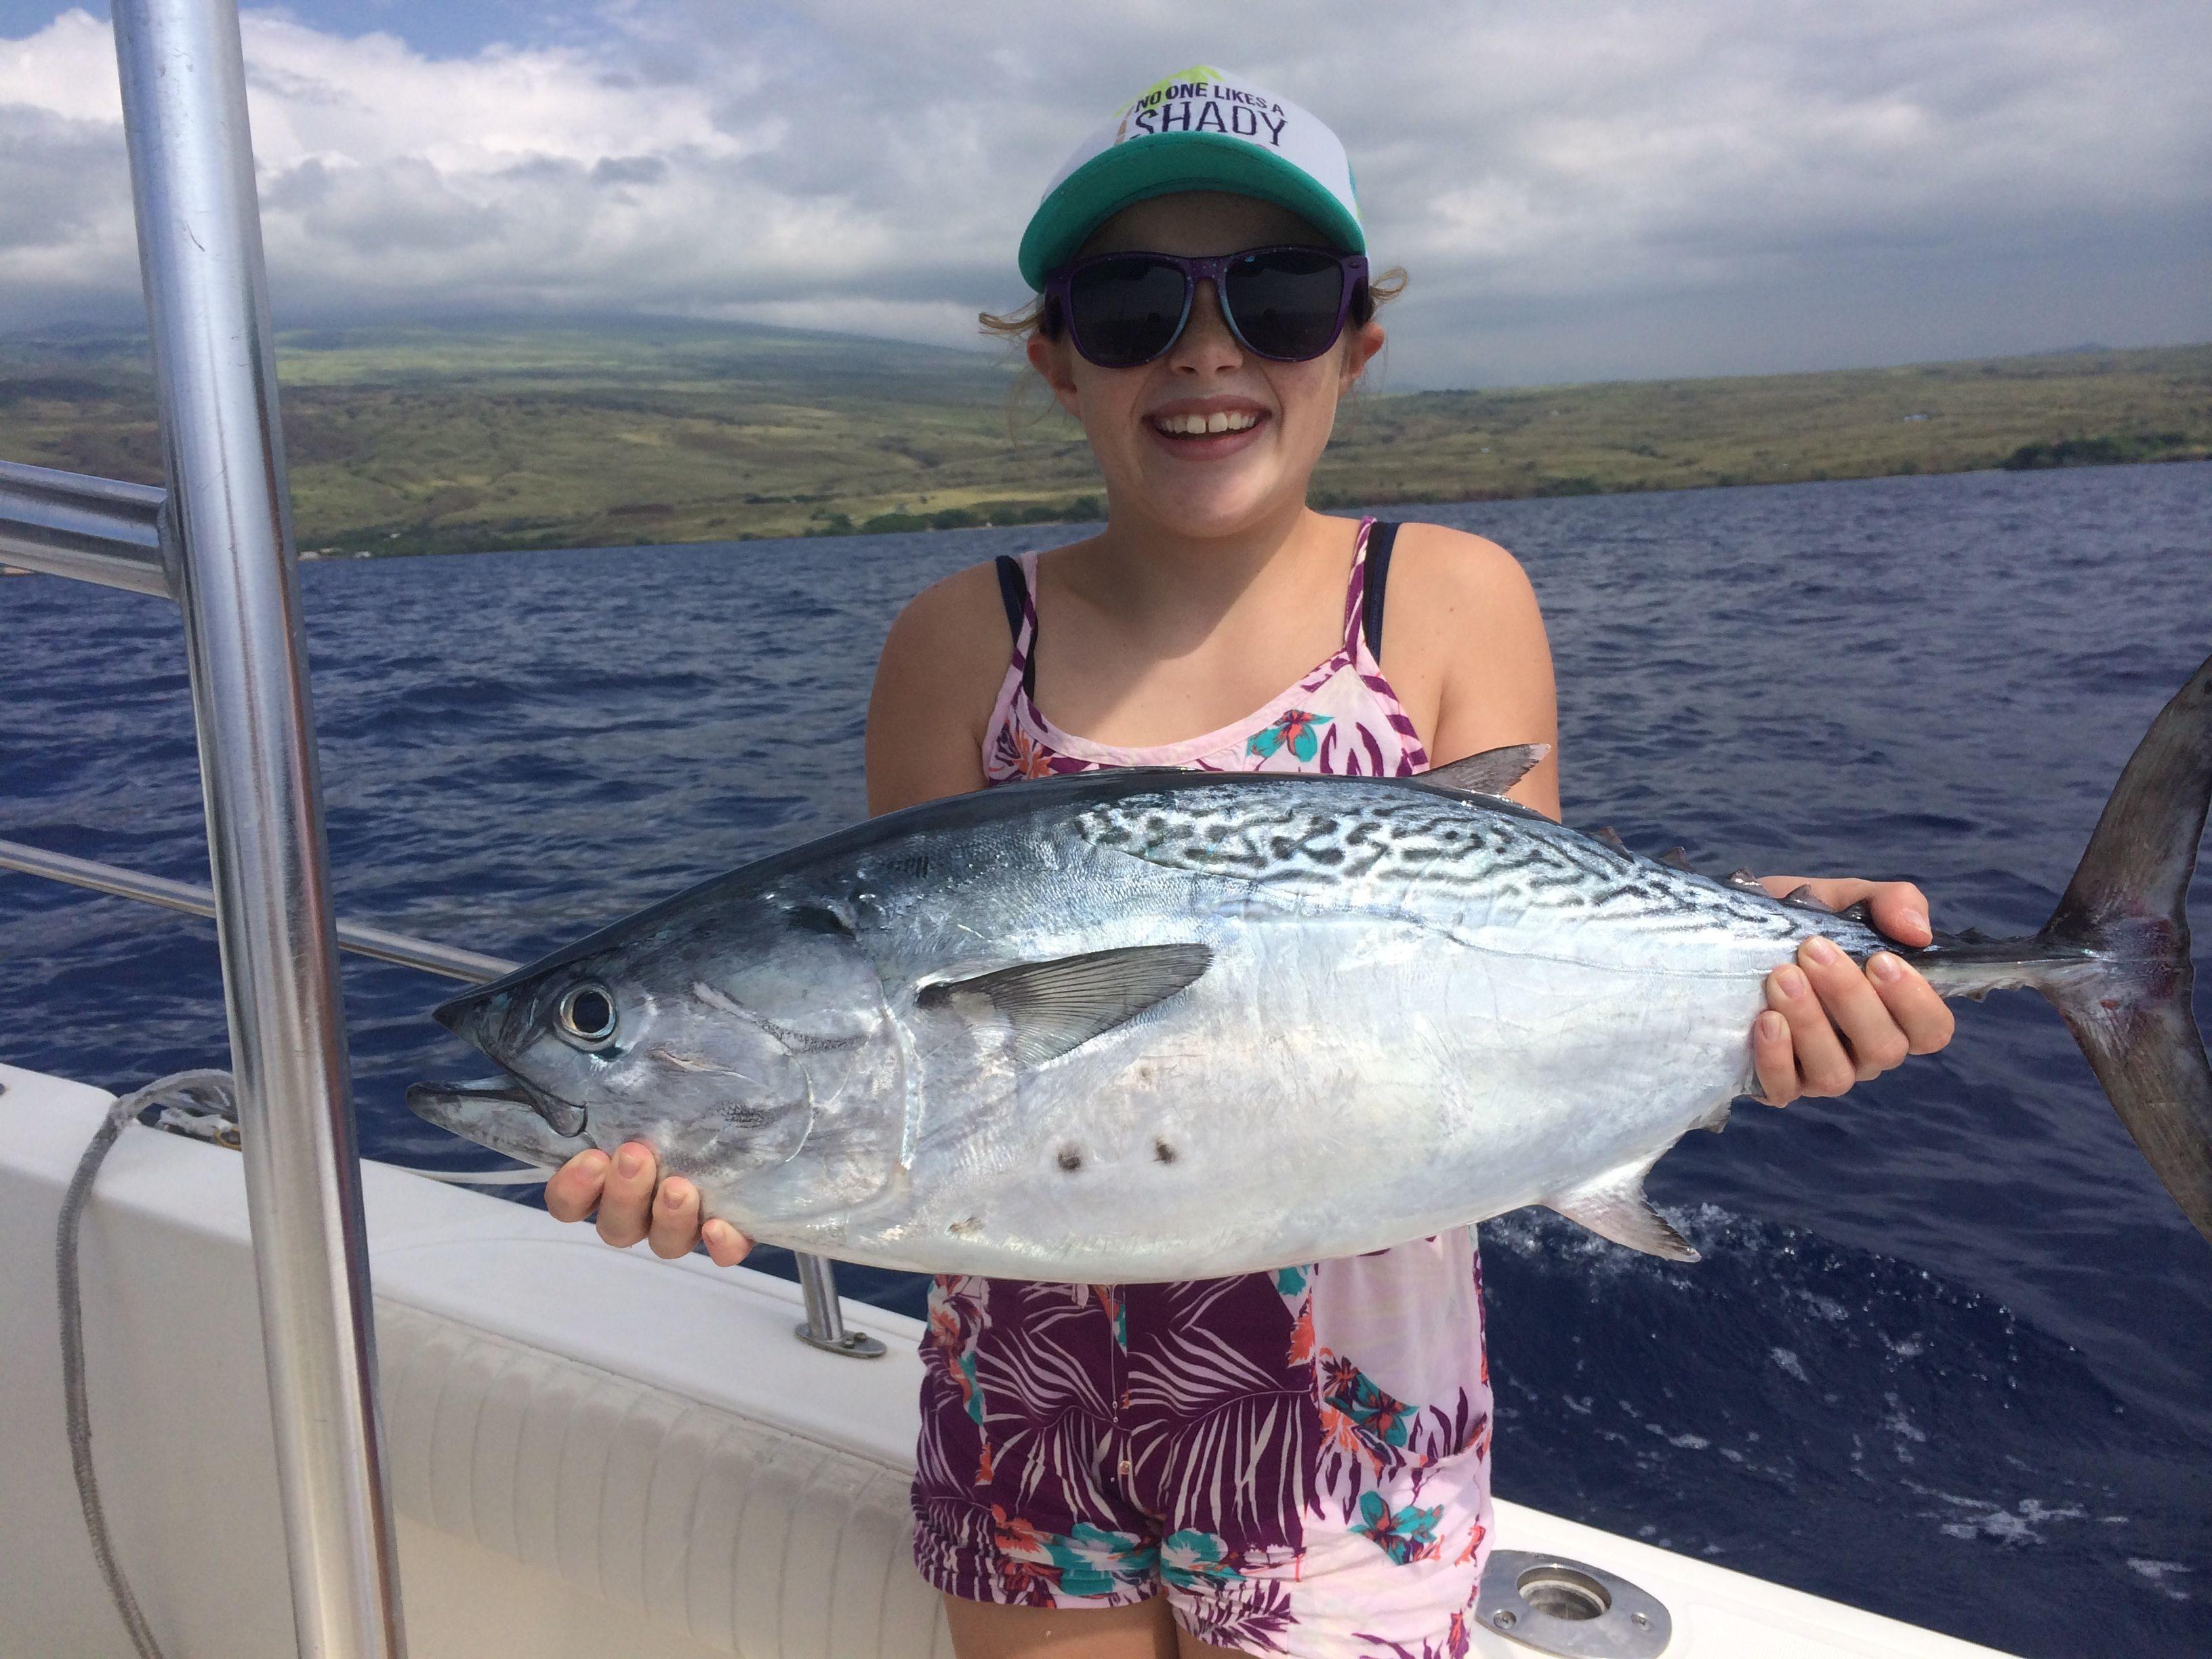 Choosing a Kona fishing charter?